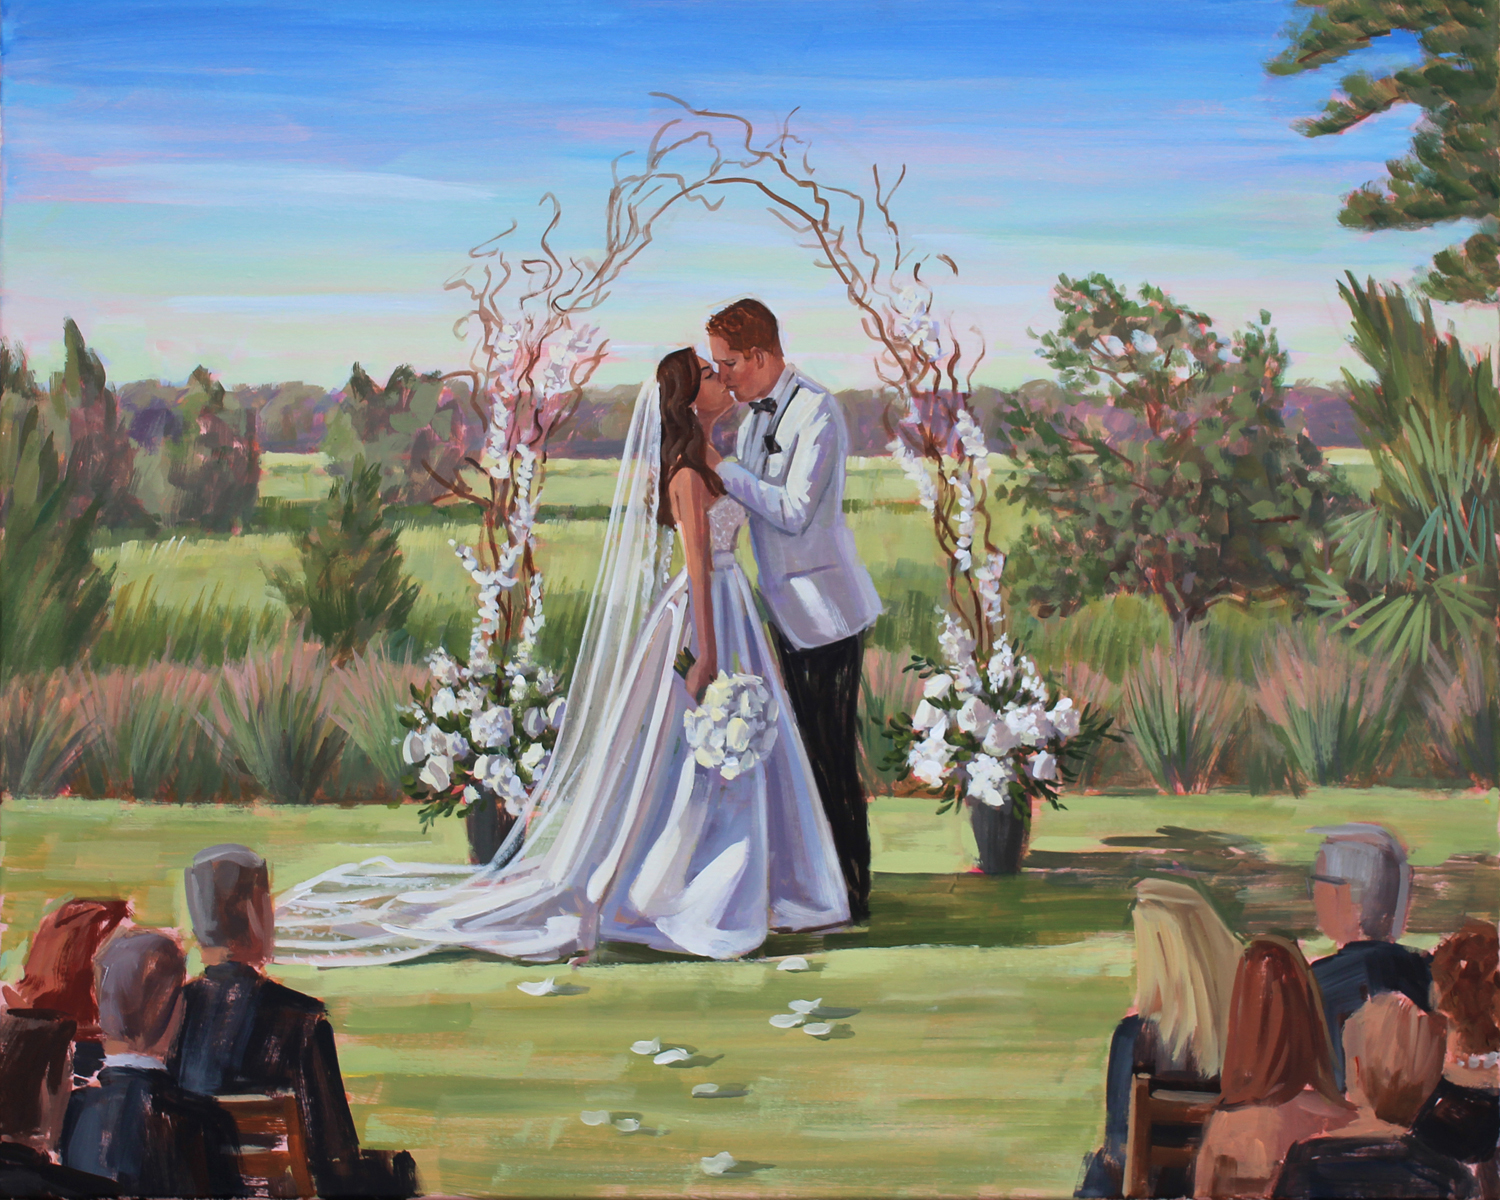 Charleston artist, Ben Keys, captured Melaina + Evan's wedding day with a live painting of their ceremony held at Daniel Island Club.